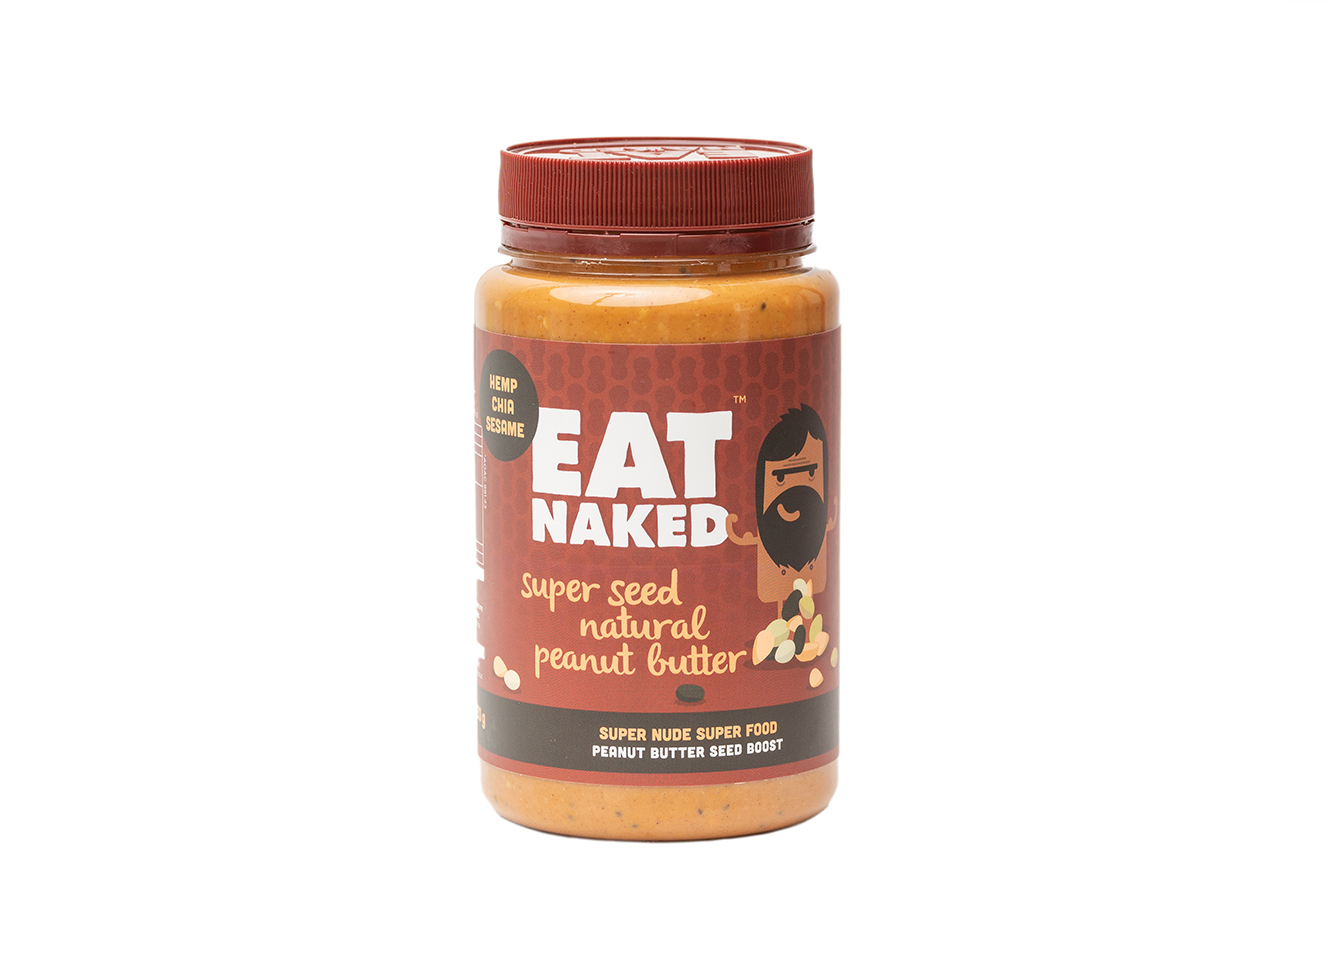 2. Super seeeded penut butter 520g jar - available sizes and nutritional information